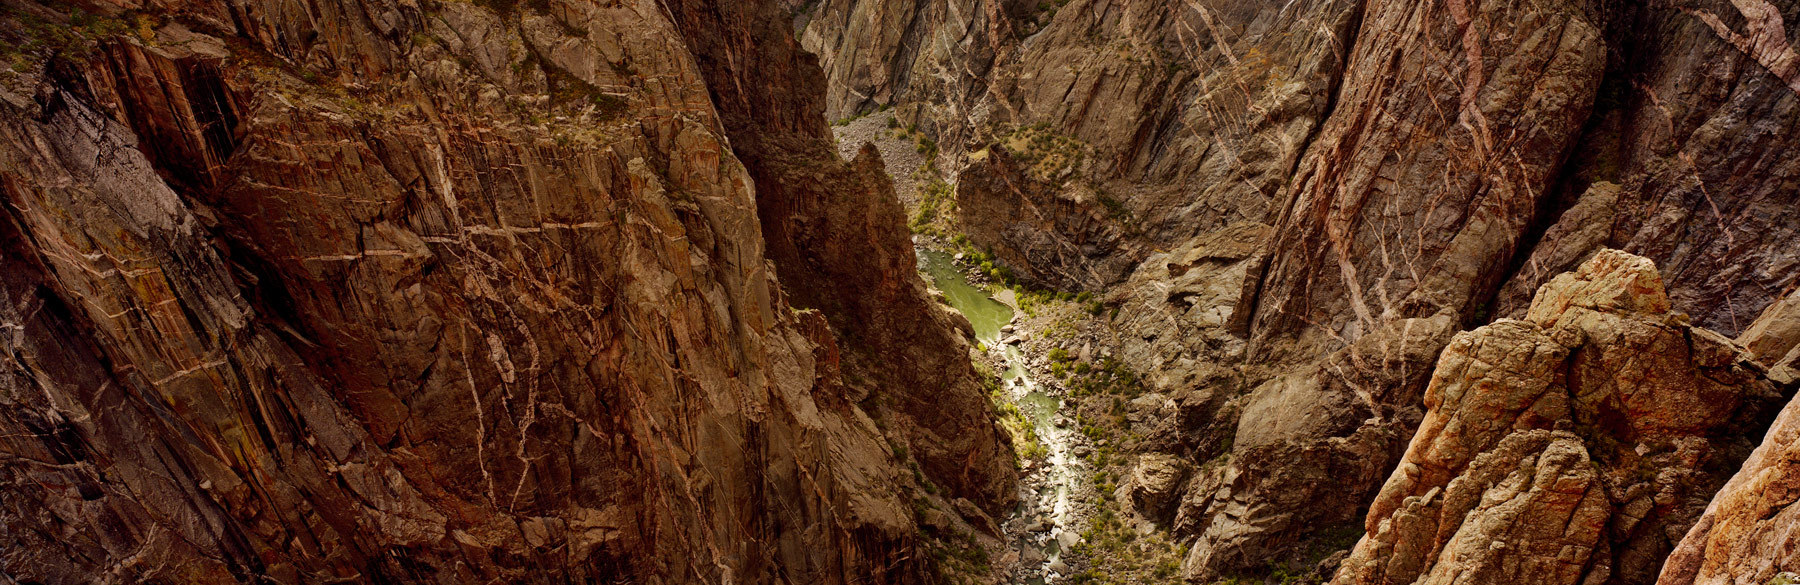 Lightbox_jorstad_black_canyon_bqz3x1